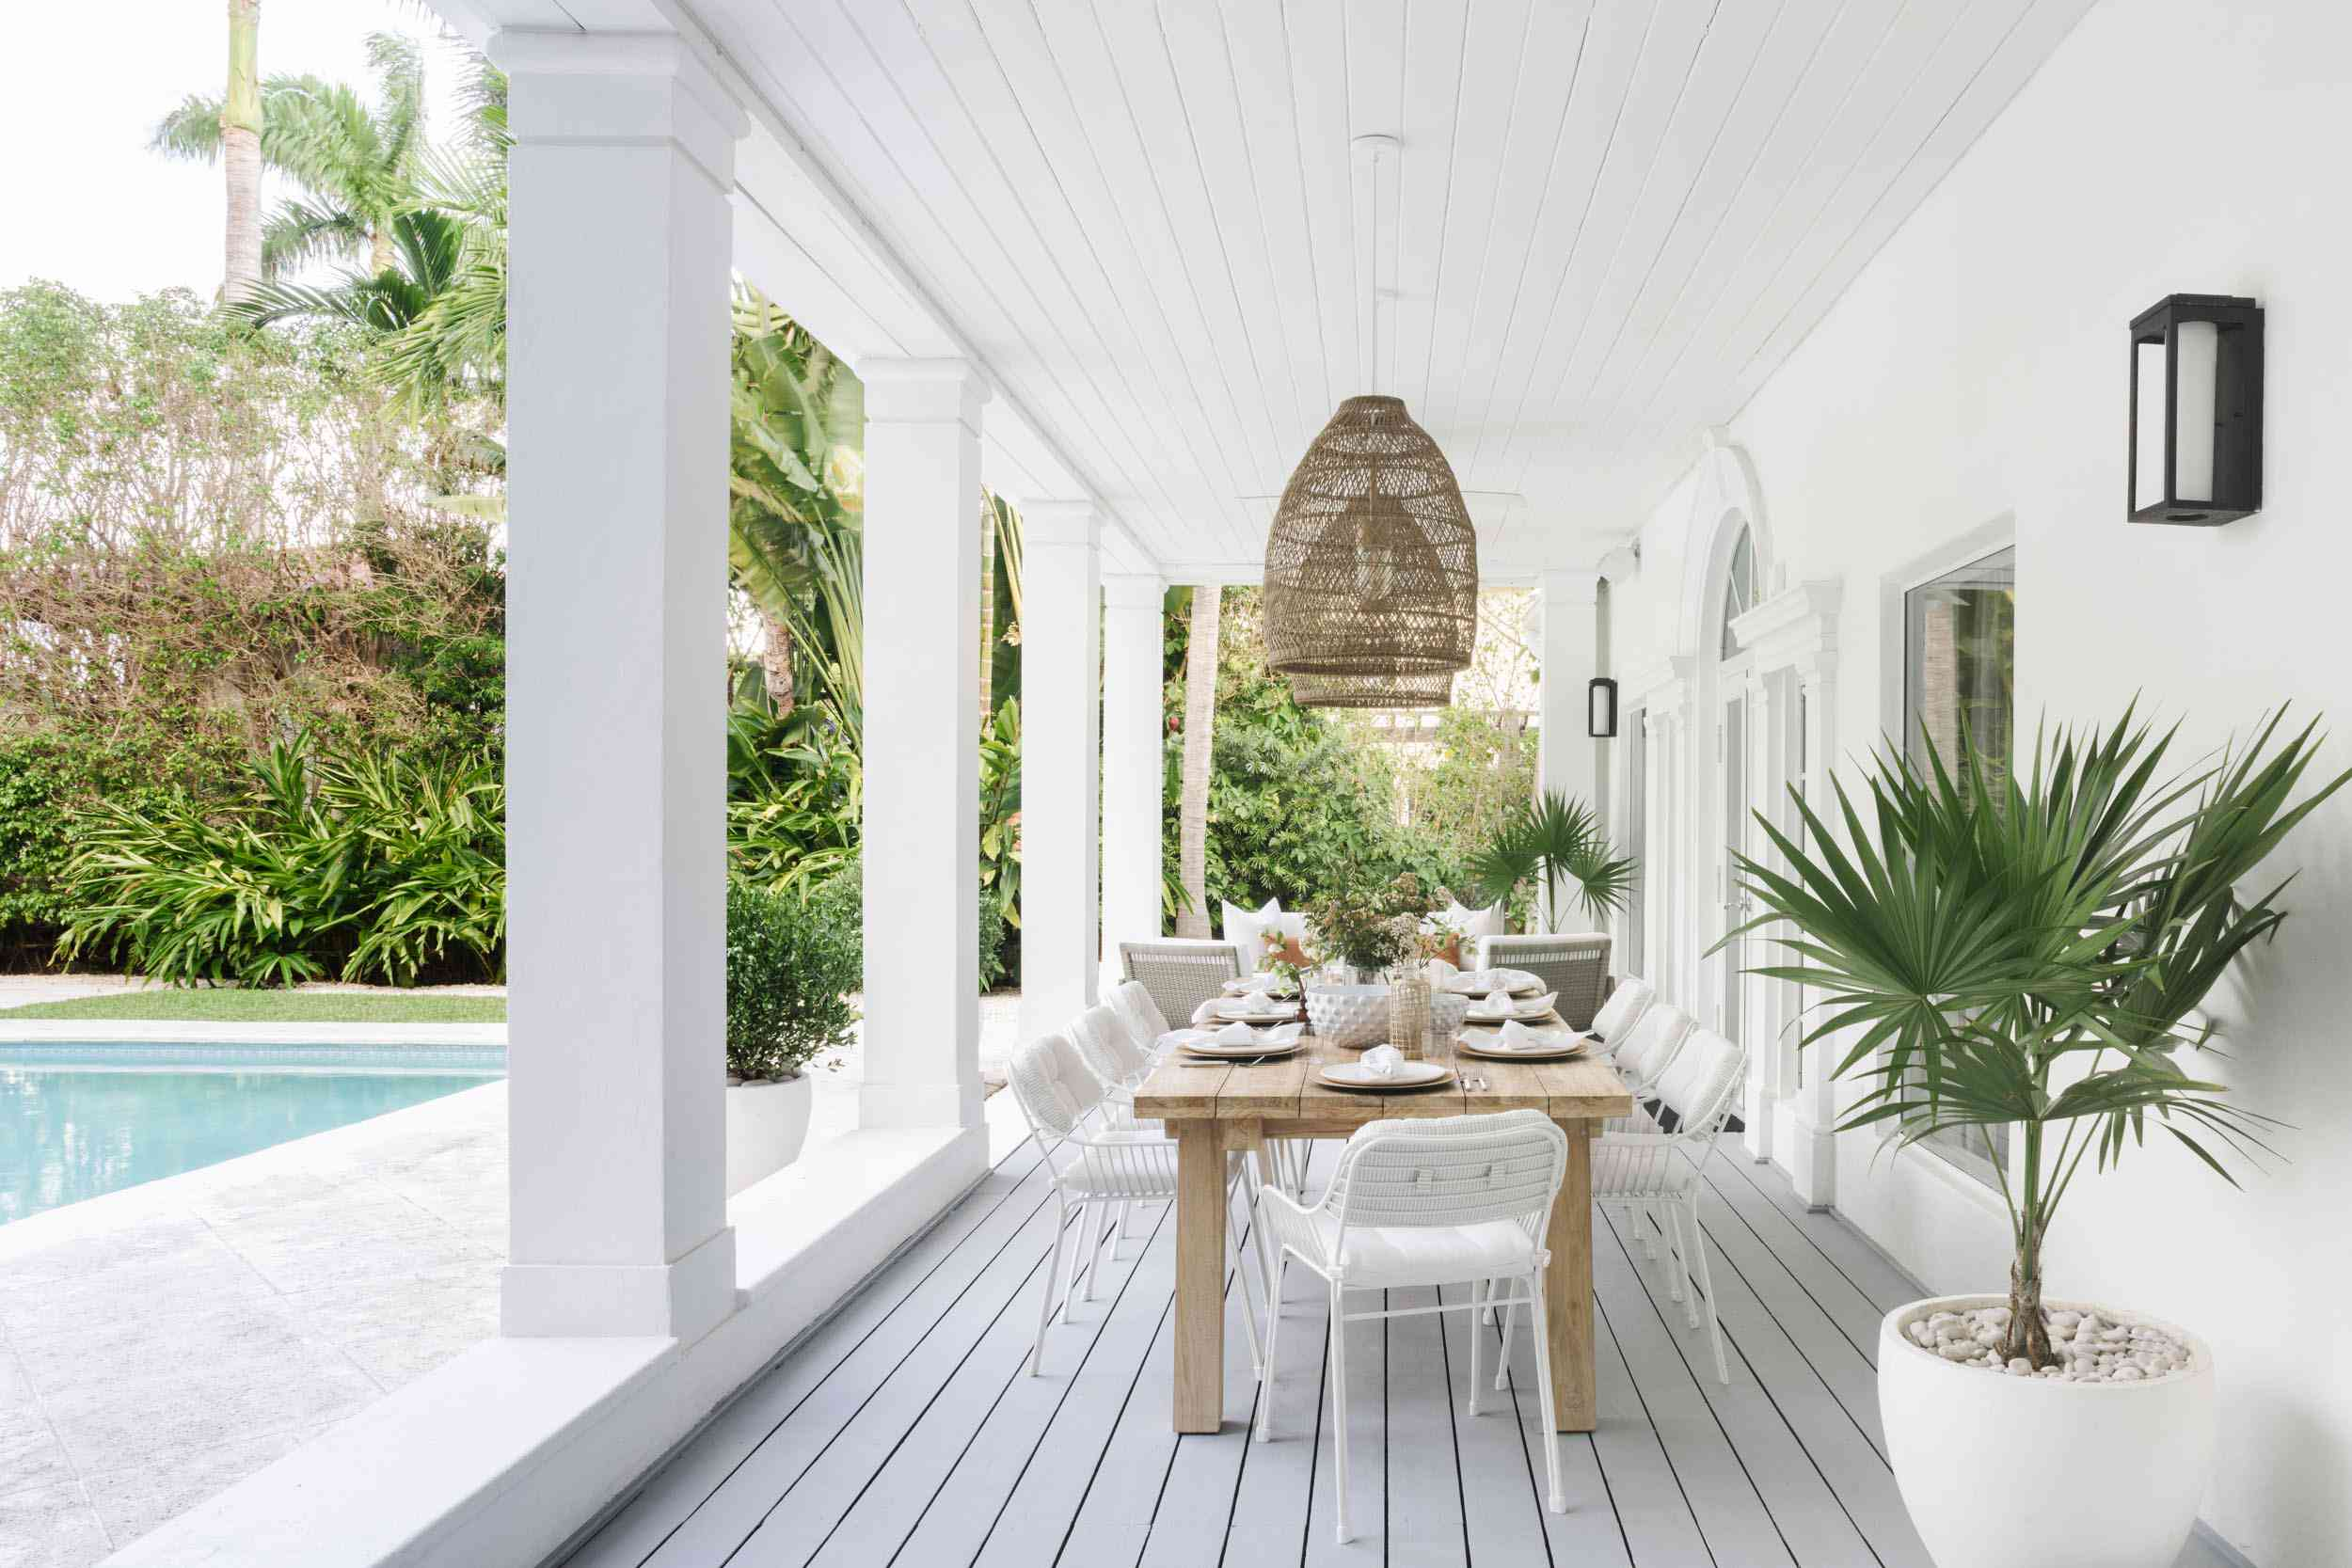 Backyard with large dining table and rattan pendant lights.